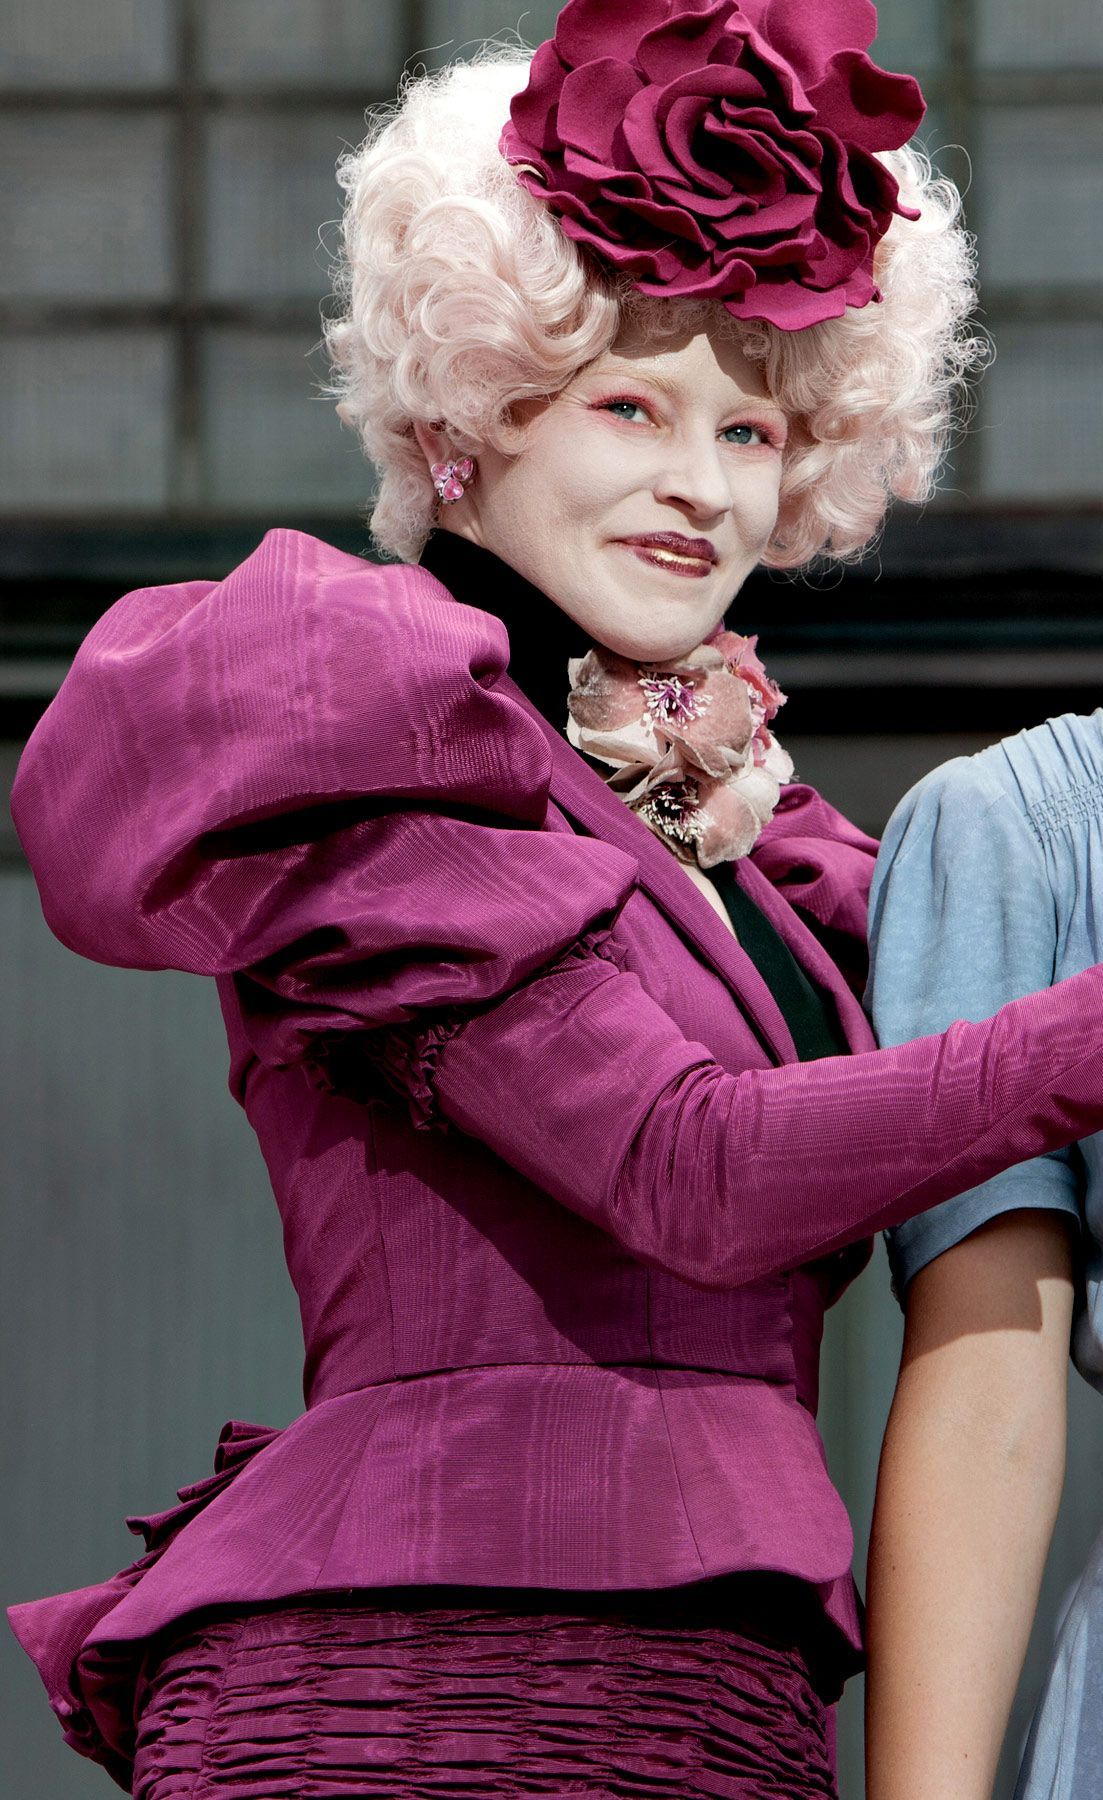 The Hunger Games Movie\'s Crazy Hair and Makeup: All the Details ...